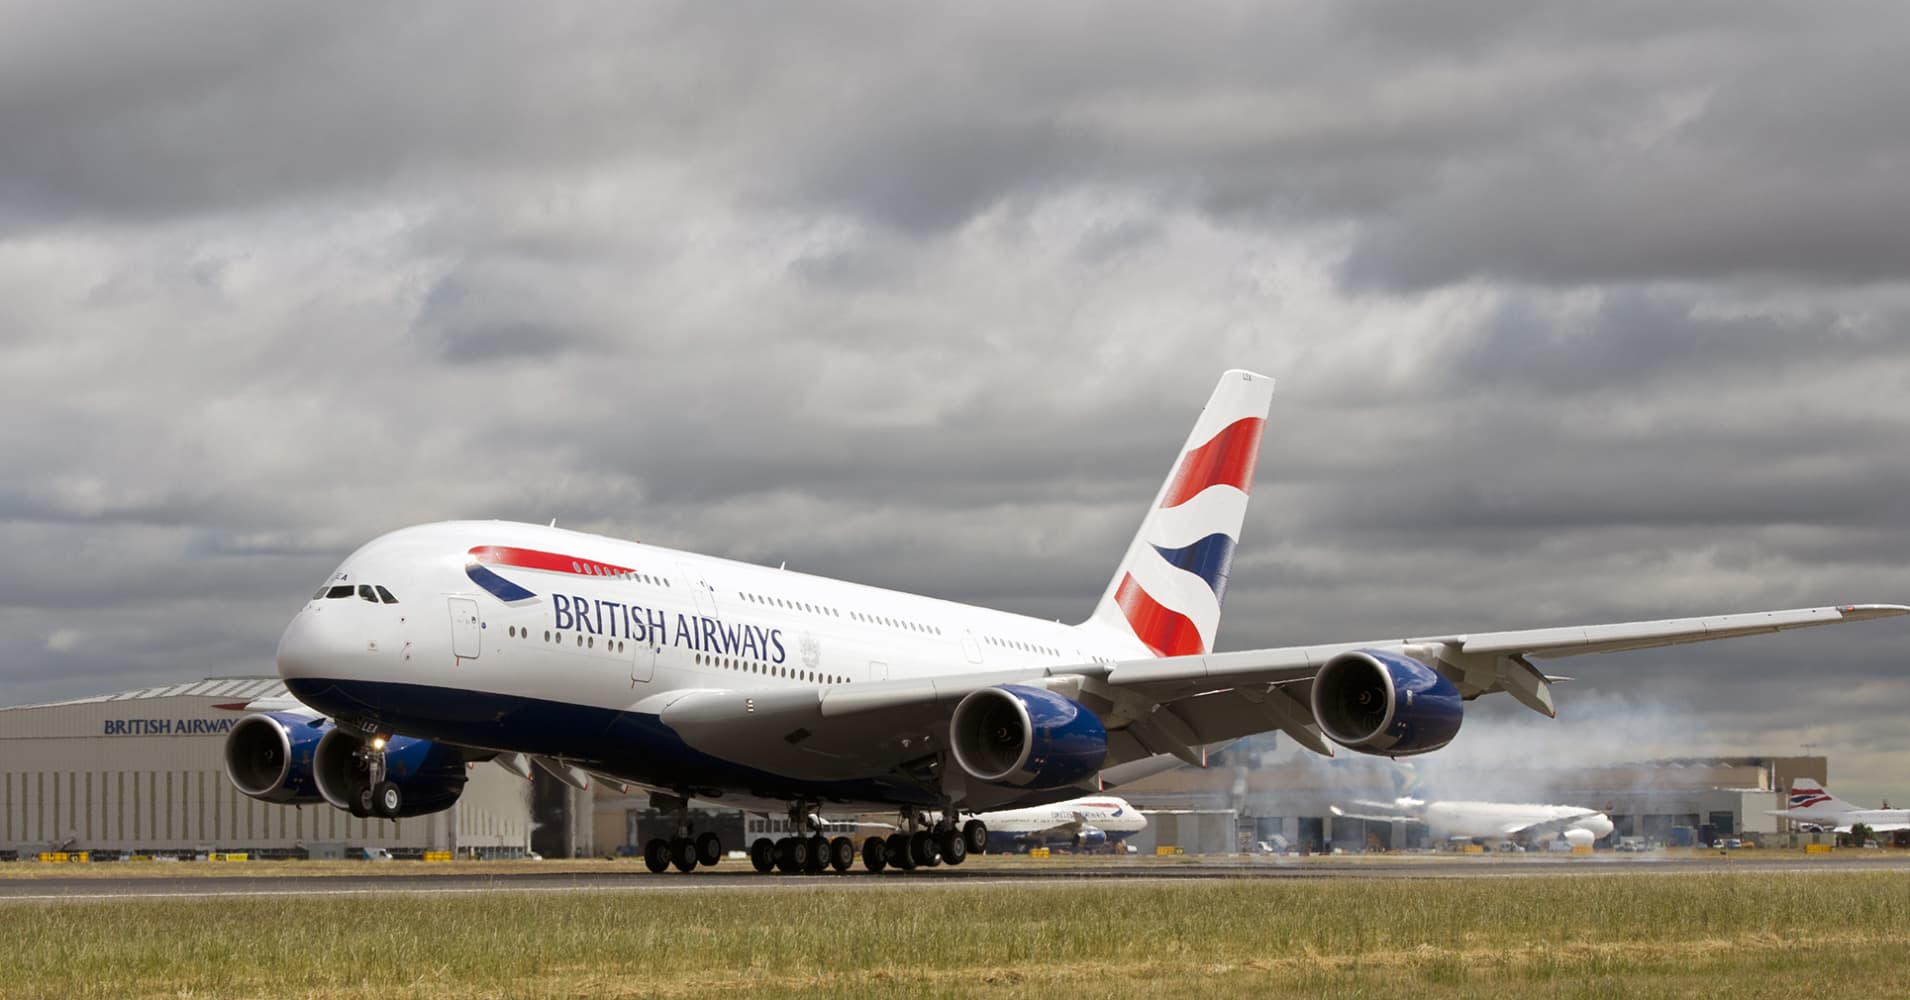 Britain's Heathrow says BA still experiencing some disruptions, airline says full long-haul schedule to operate